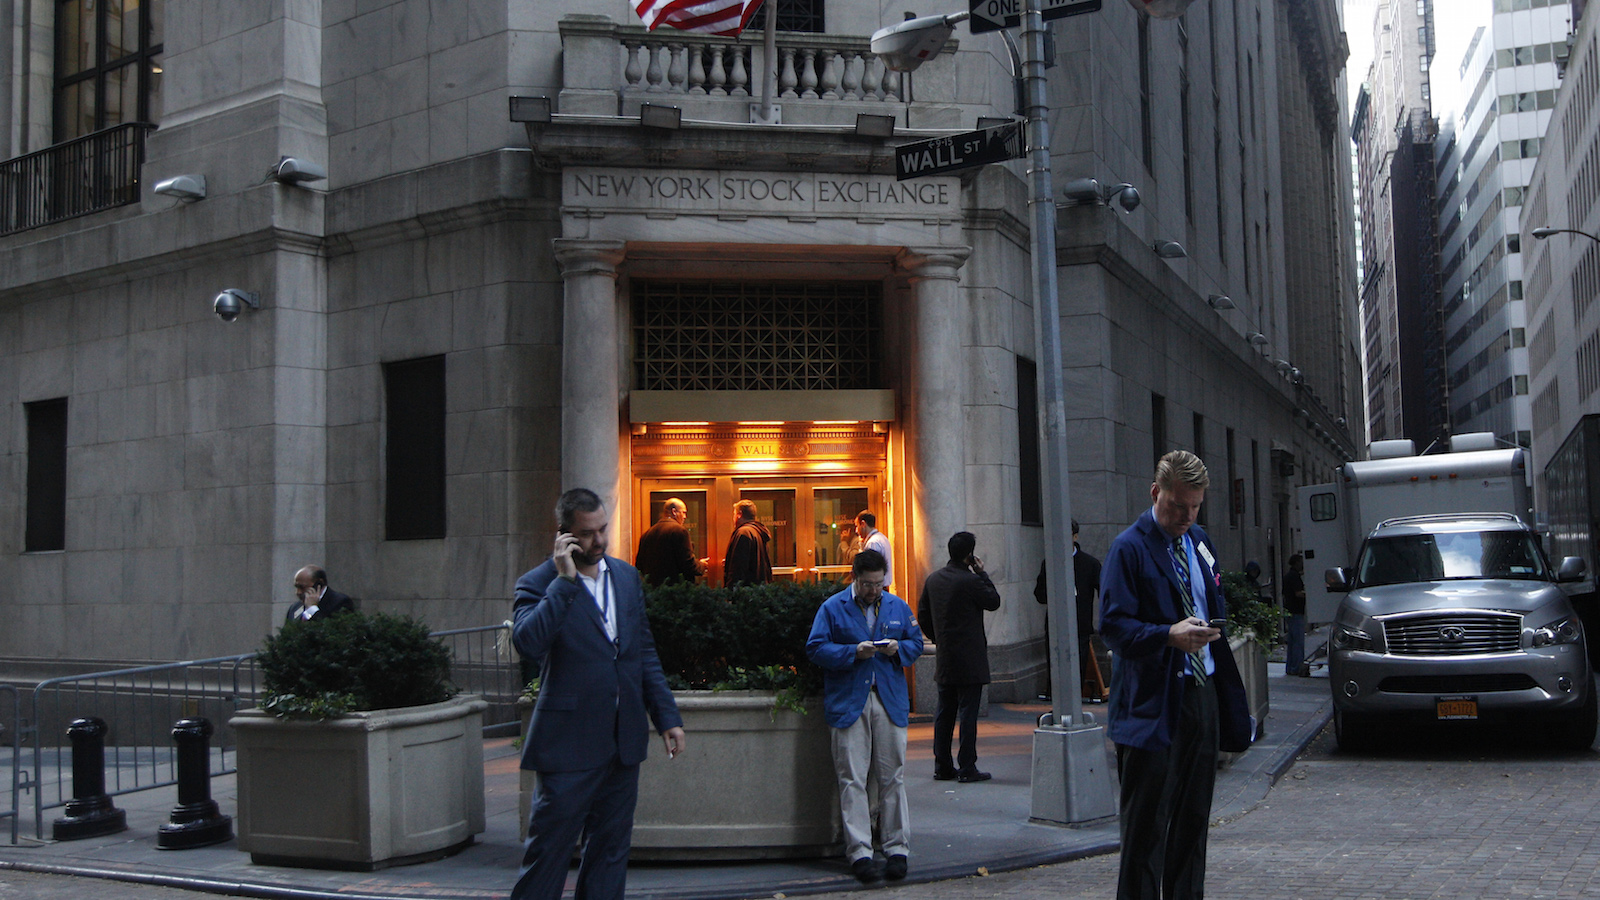 Traders stand outside the New York Stock Exchange prior to the opening bell October 31, 2012. Stock exchanges plan to open Wednesday after monster storm Sandy receded from New York, the New York Stock Exchange will renew normal operations at 9:30 a.m.